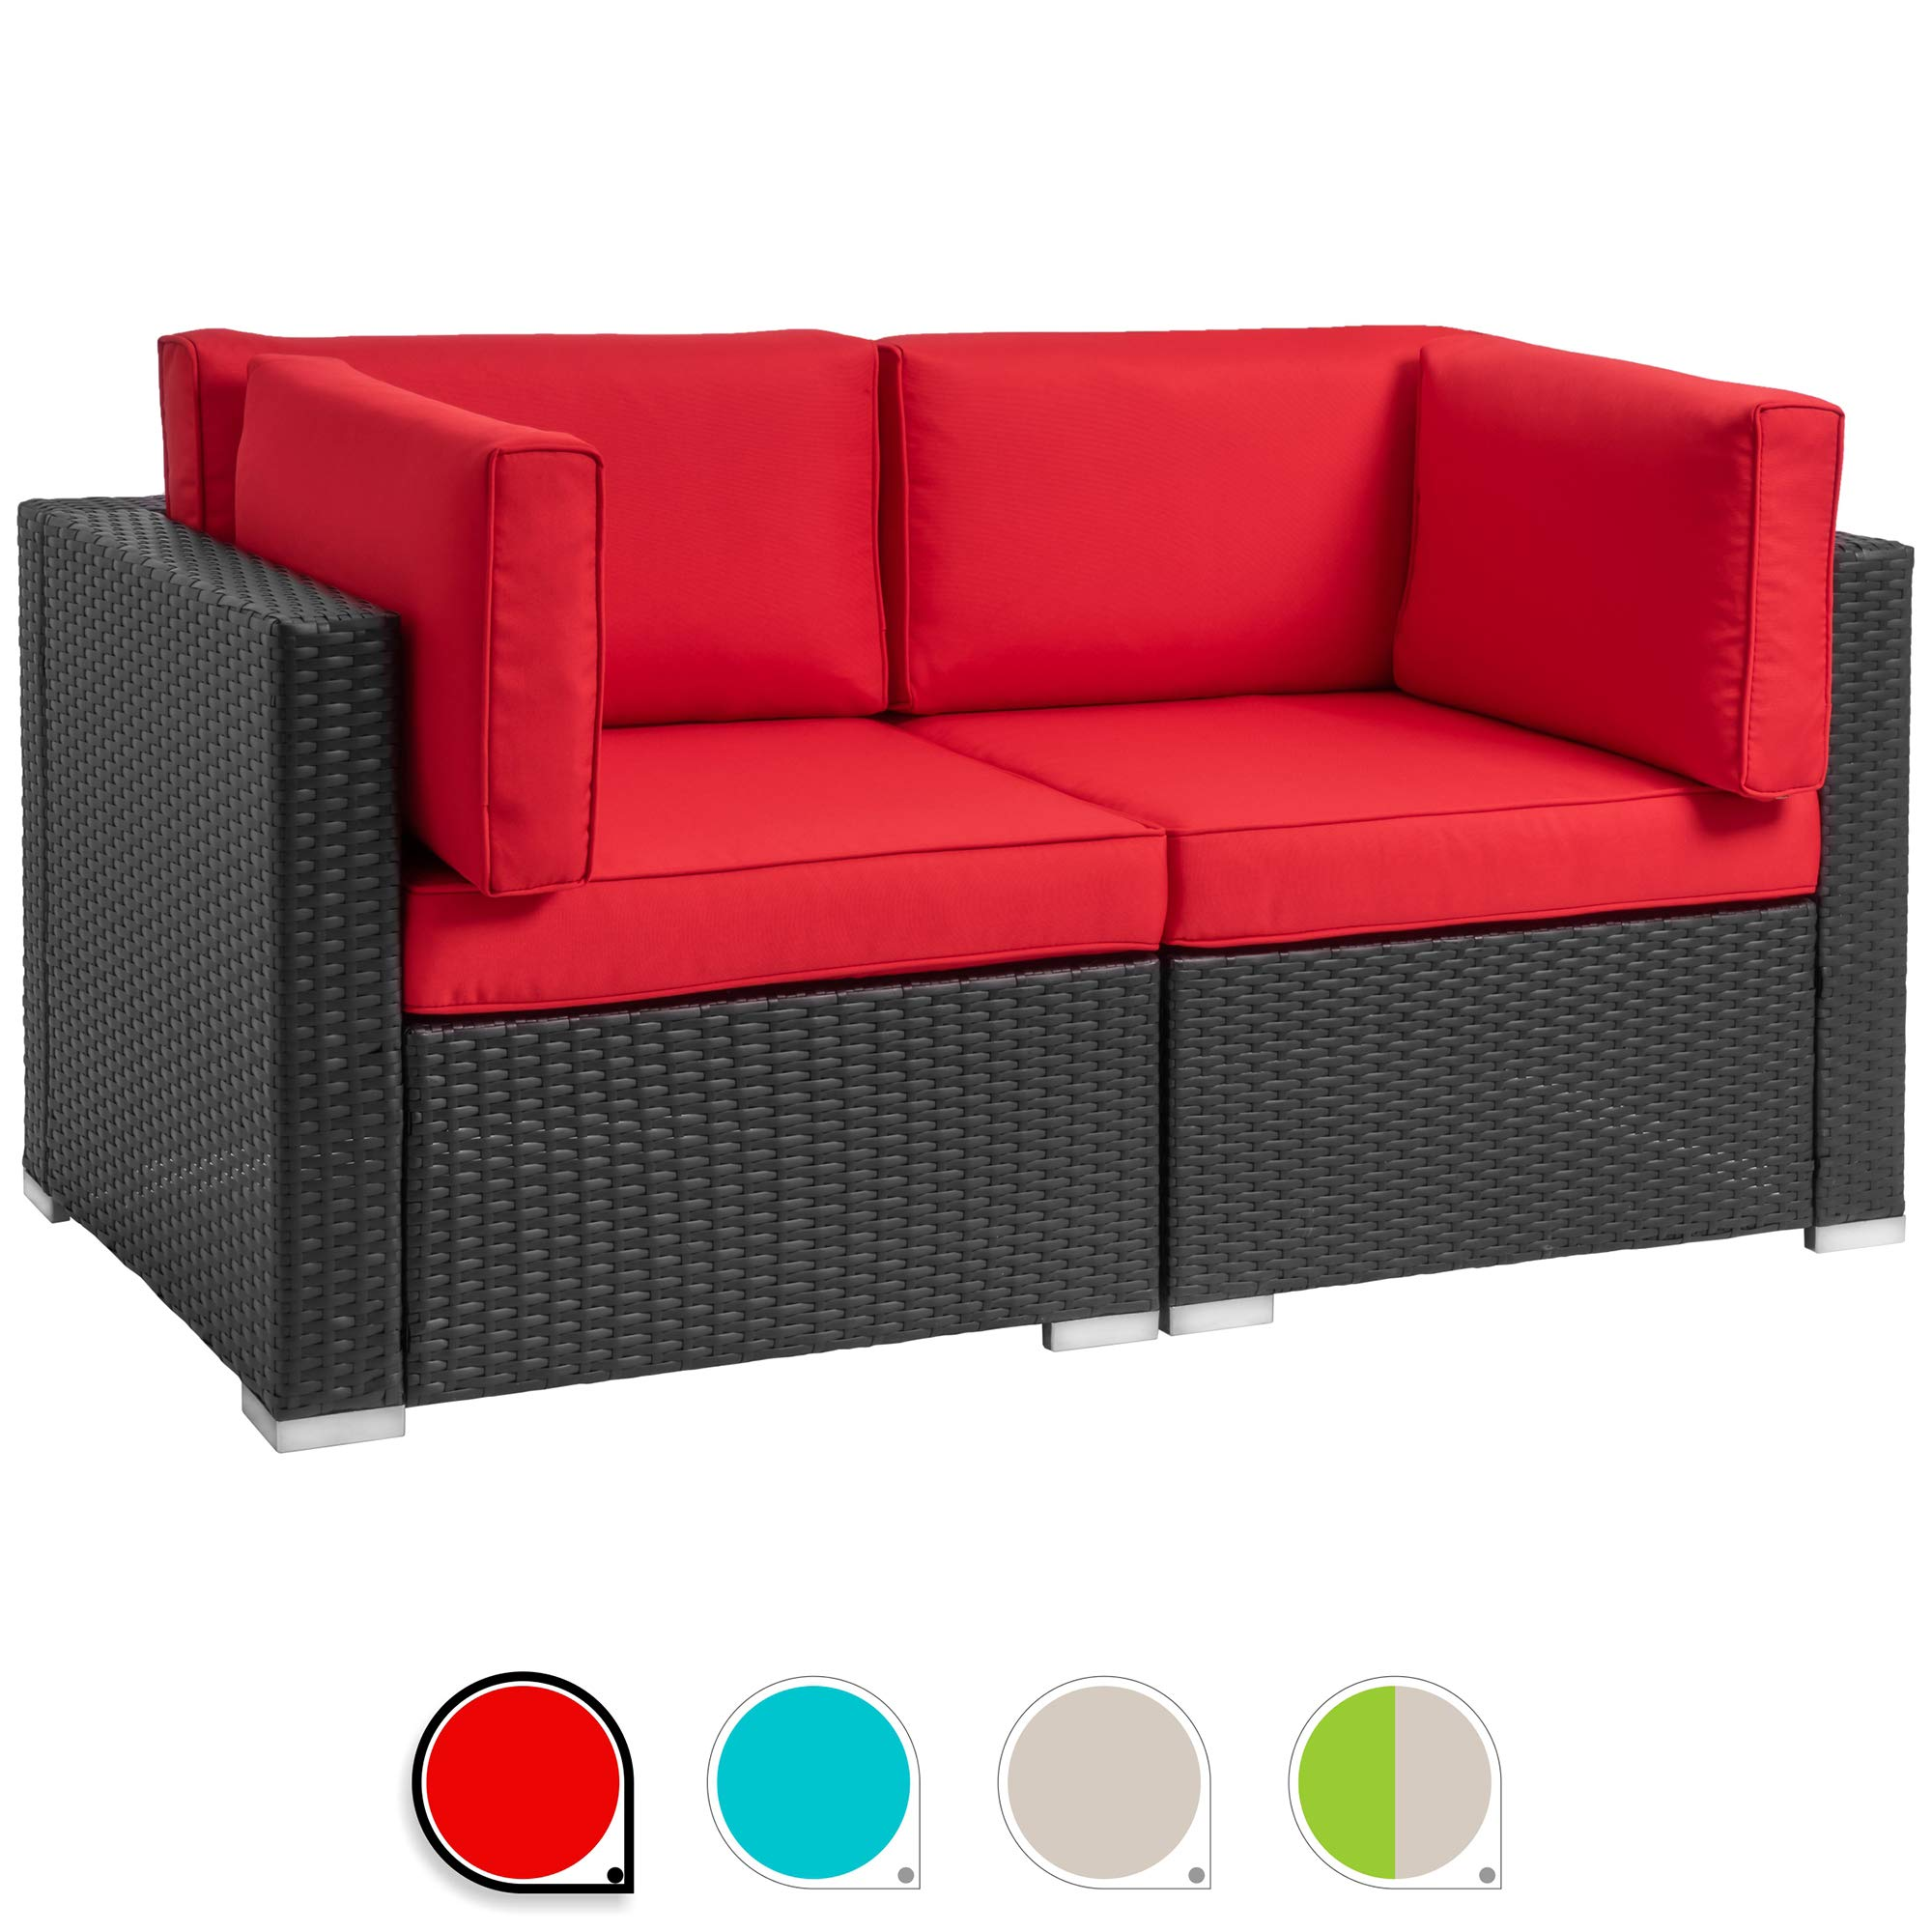 Walsunny 2pcs Patio Outdoor Furniture Sets,All-Weather Rattan Sectional Sofa with Washable Couch Cushions (Black Rattan) (Loveseats Red)